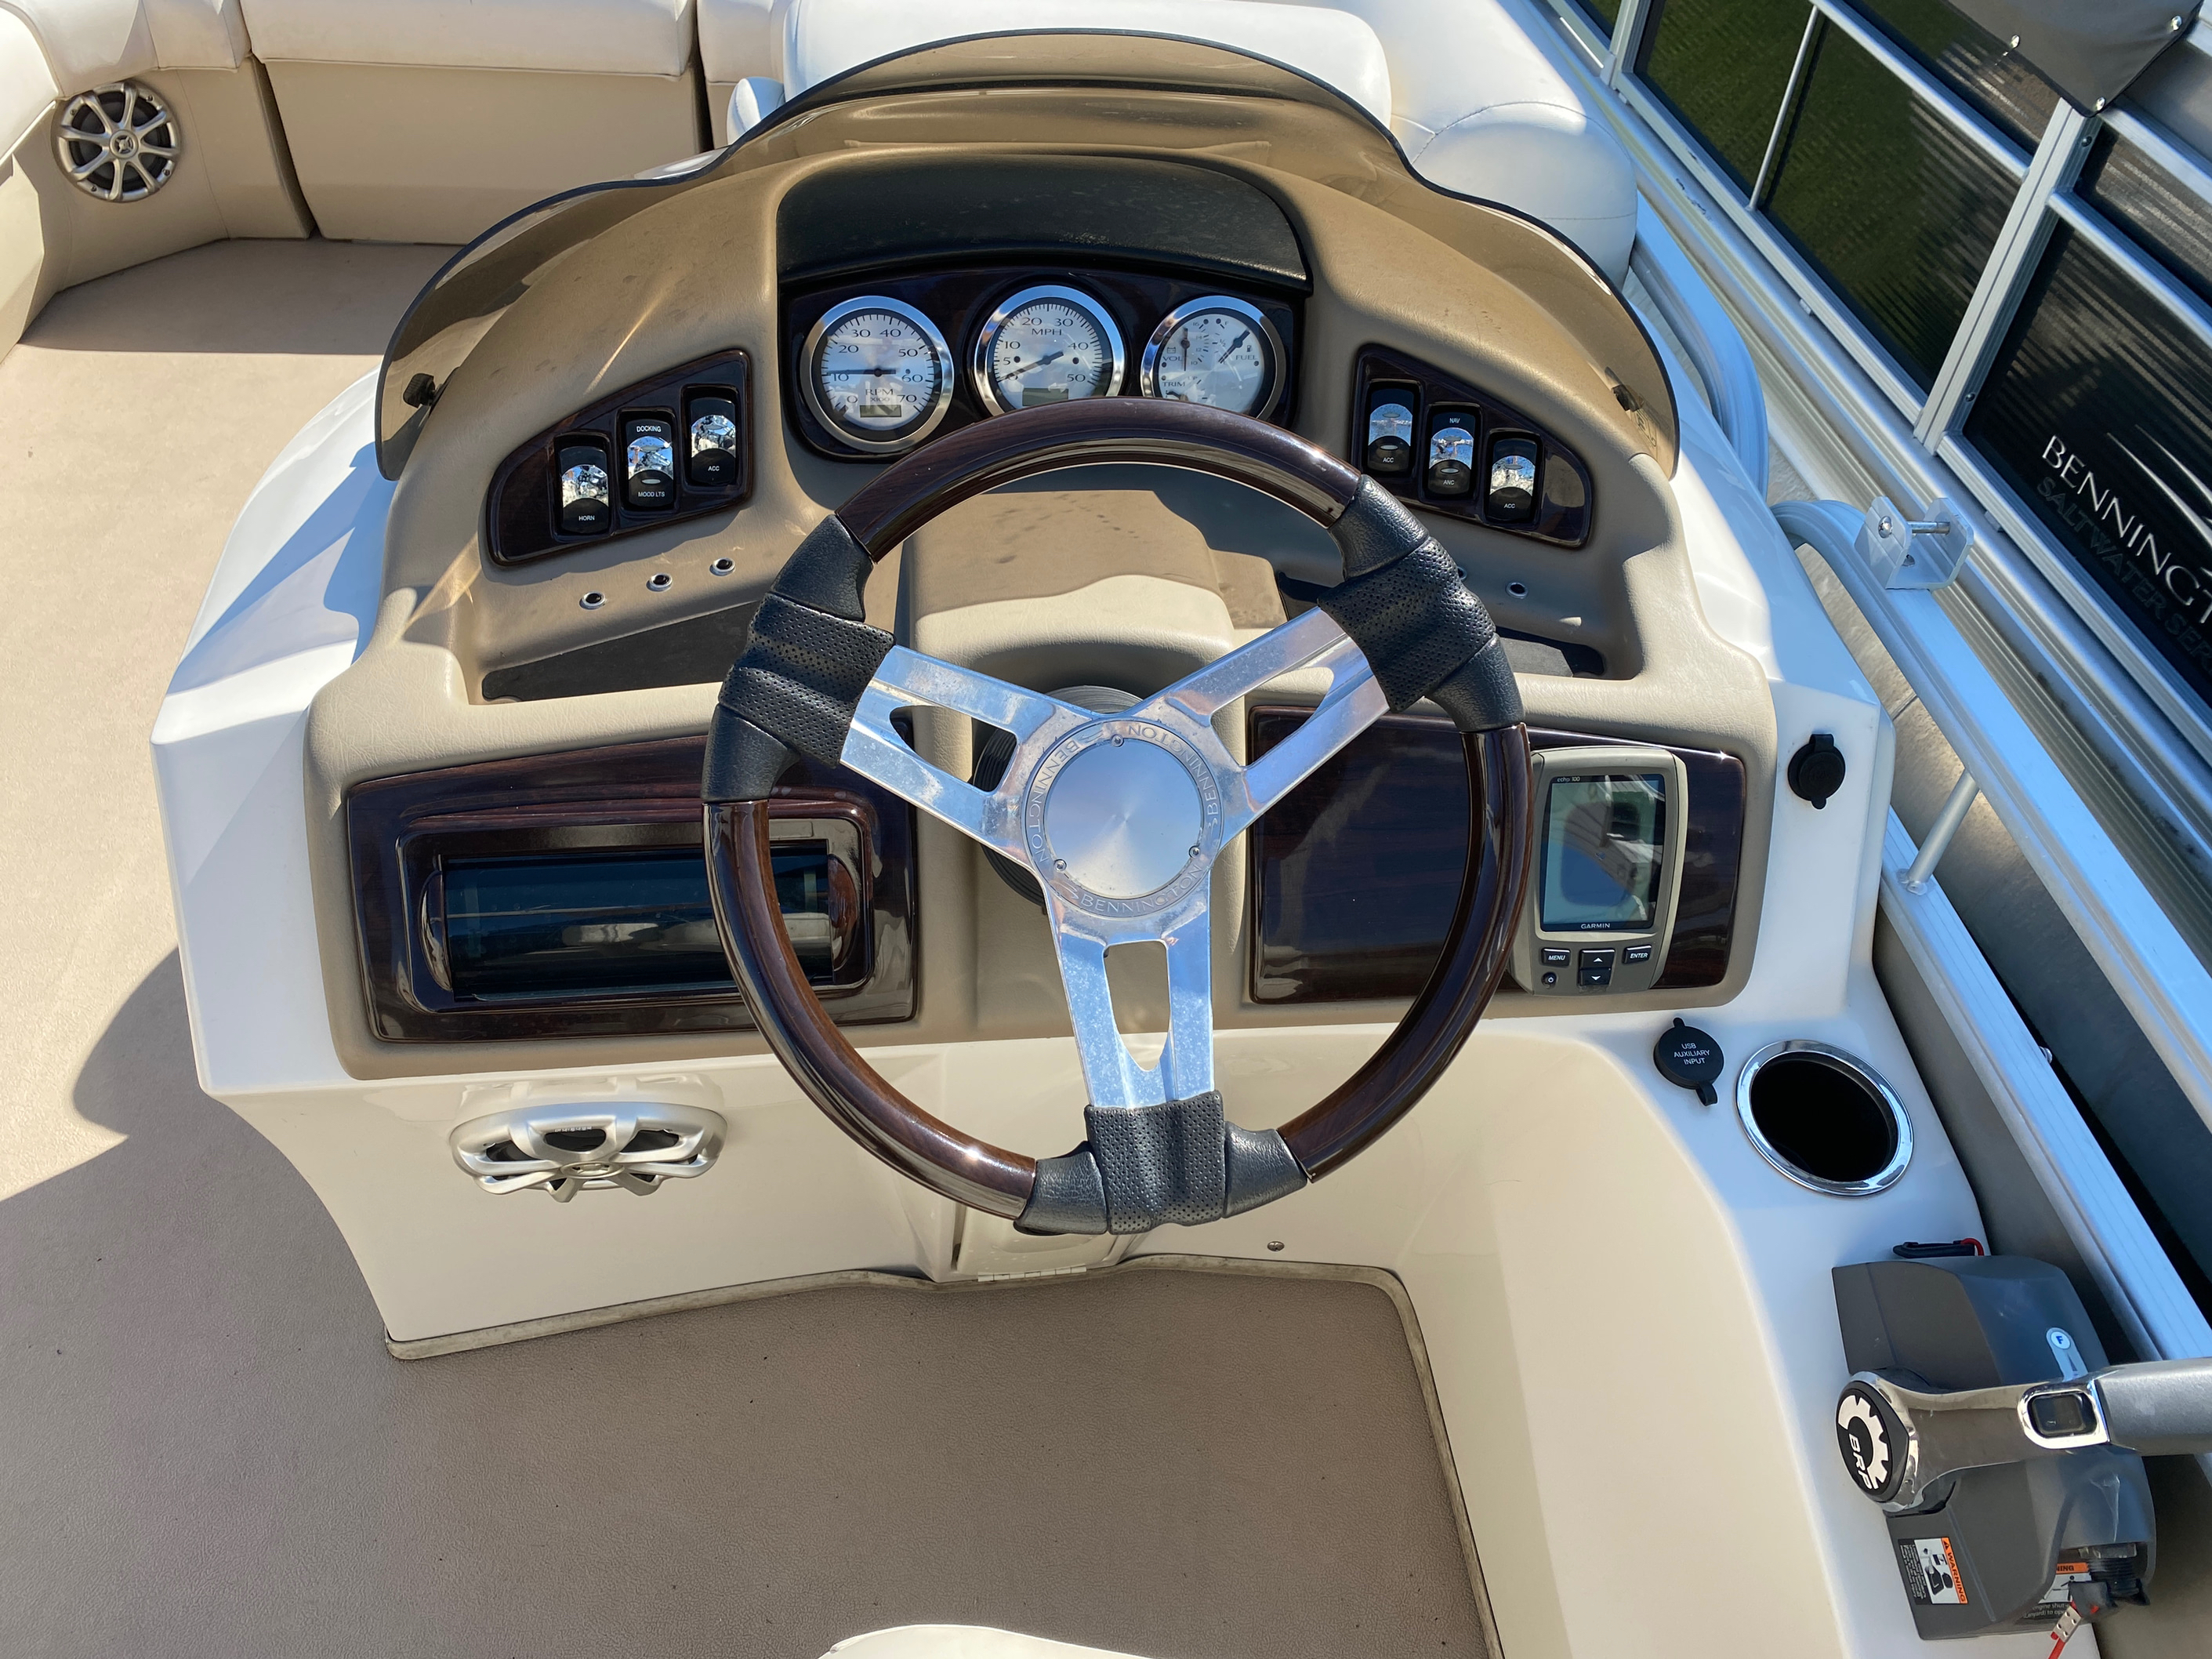 2012 Bennington boat for sale, model of the boat is 2275 GCW Pontoon & Image # 9 of 11